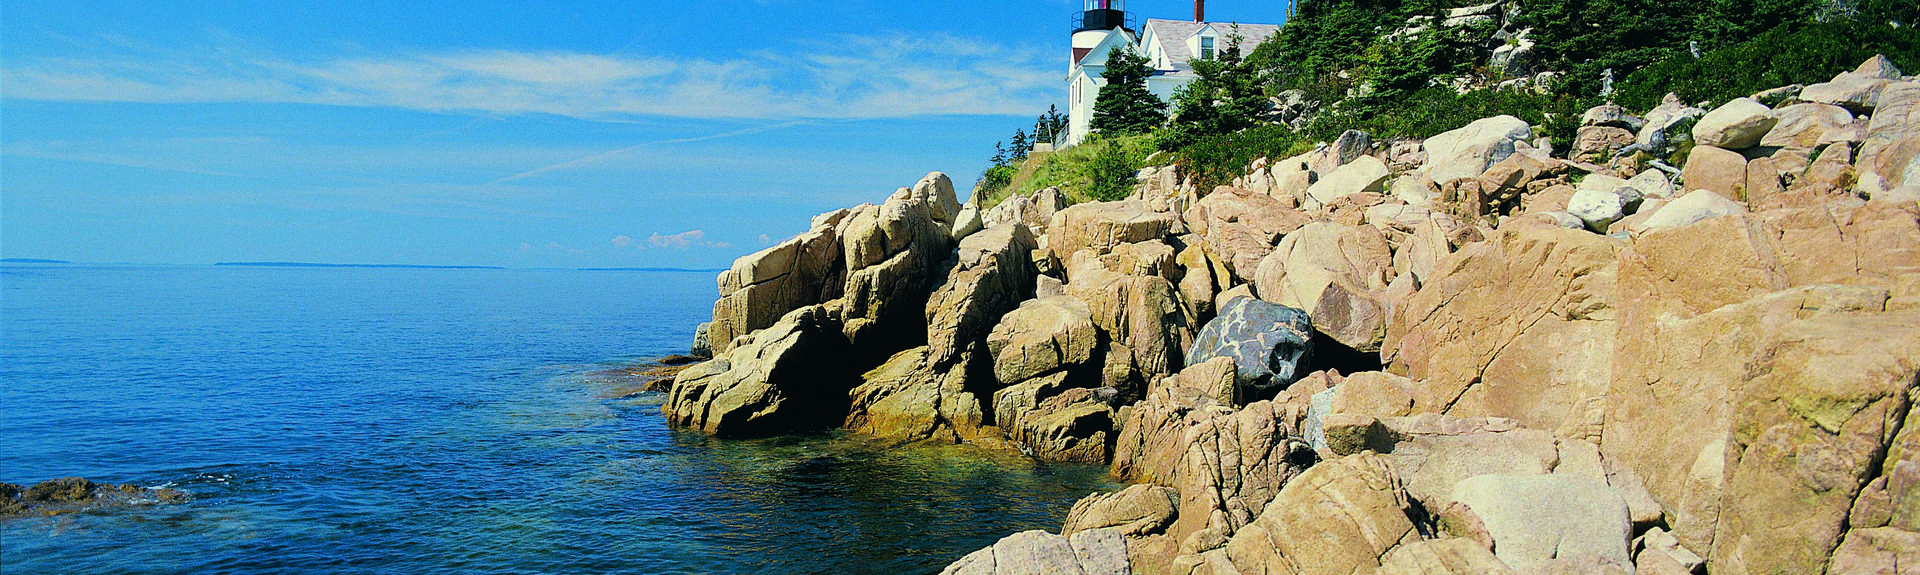 Bass Harbor, Maine, United States of America